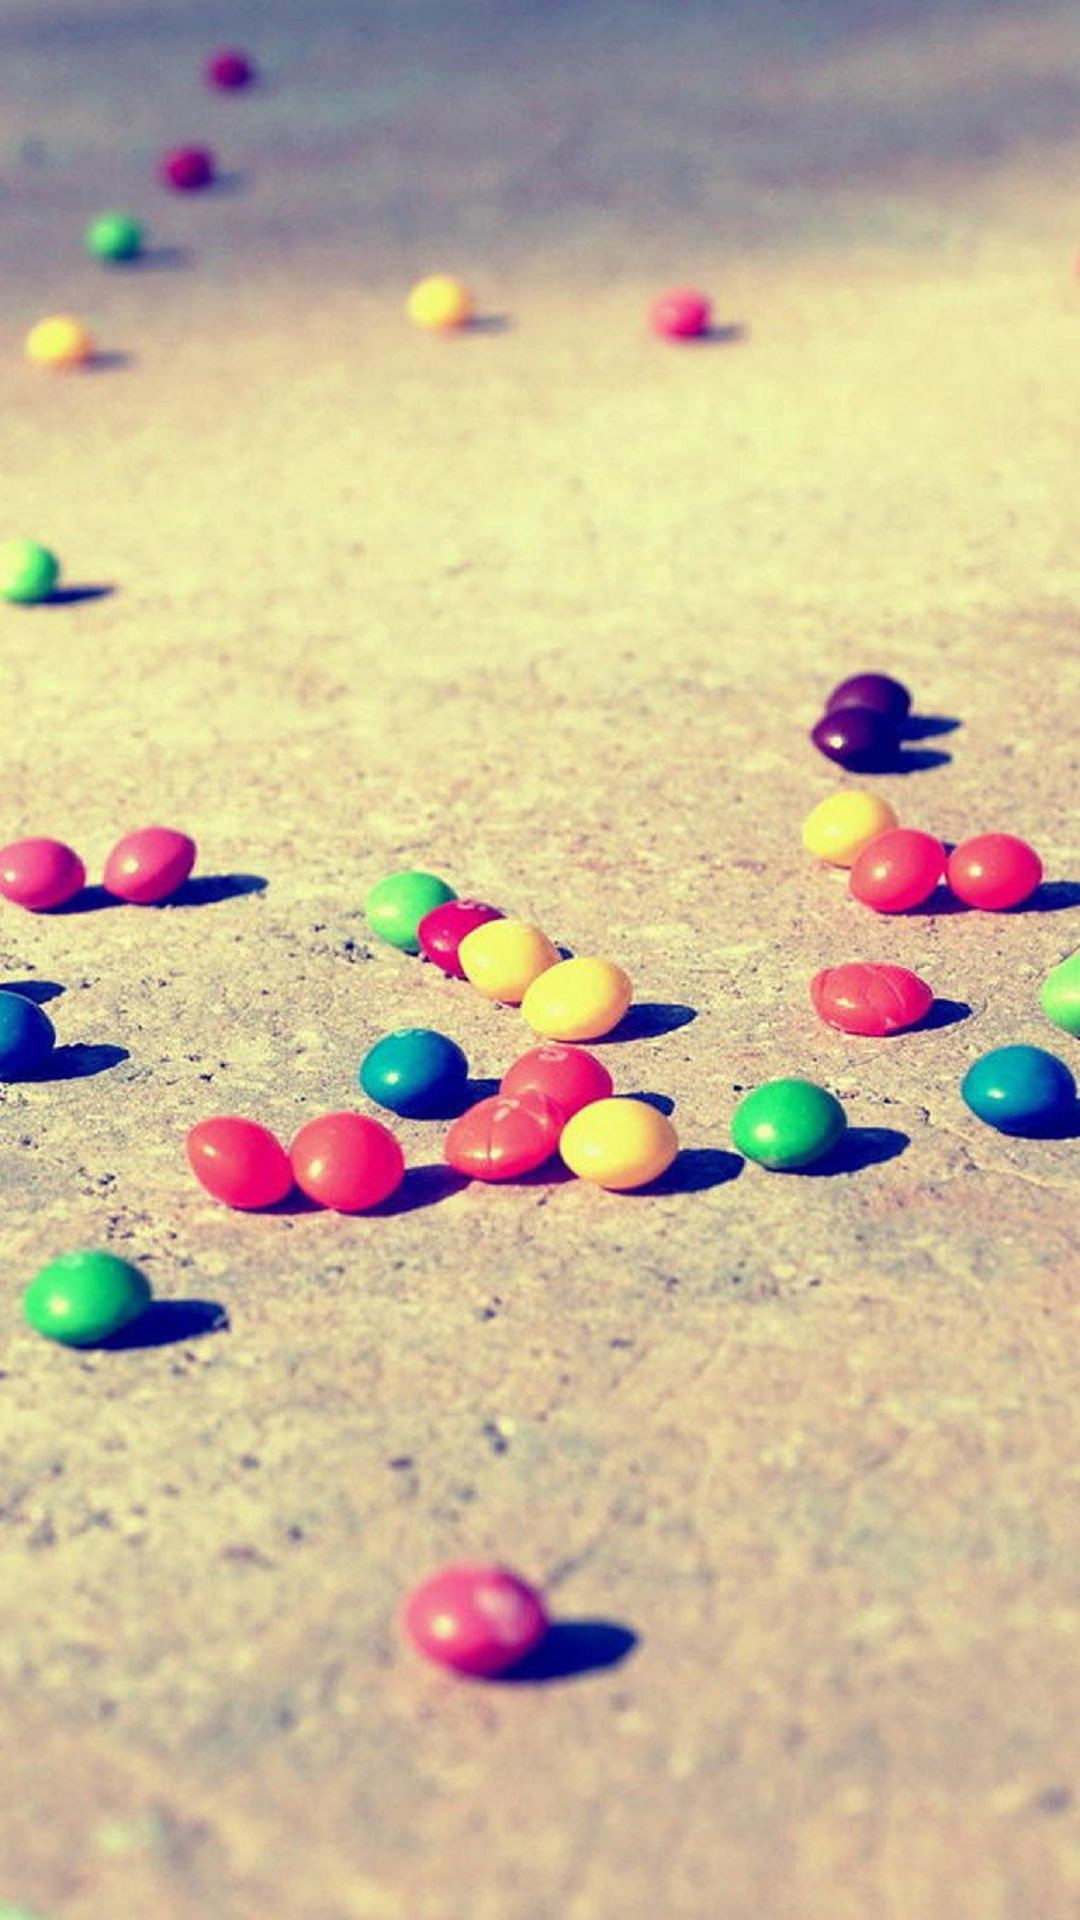 Blurred Candies on the Ground Colorful M&M's. Wallpapers …